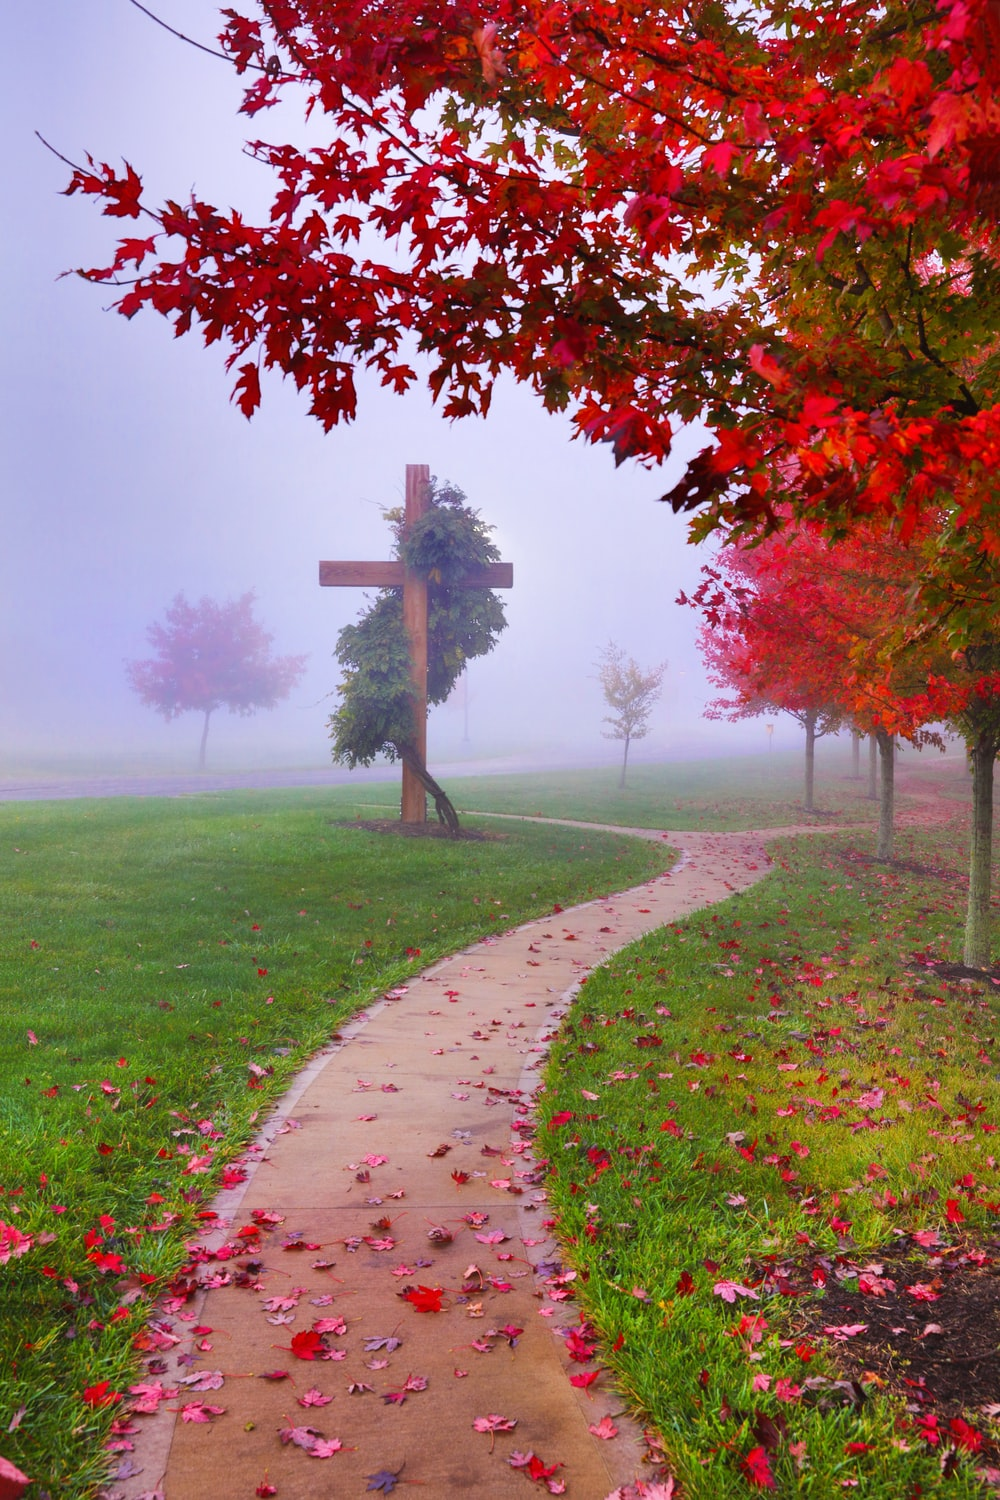 brown wooden cross on green grass field near red leaf tree during daytime